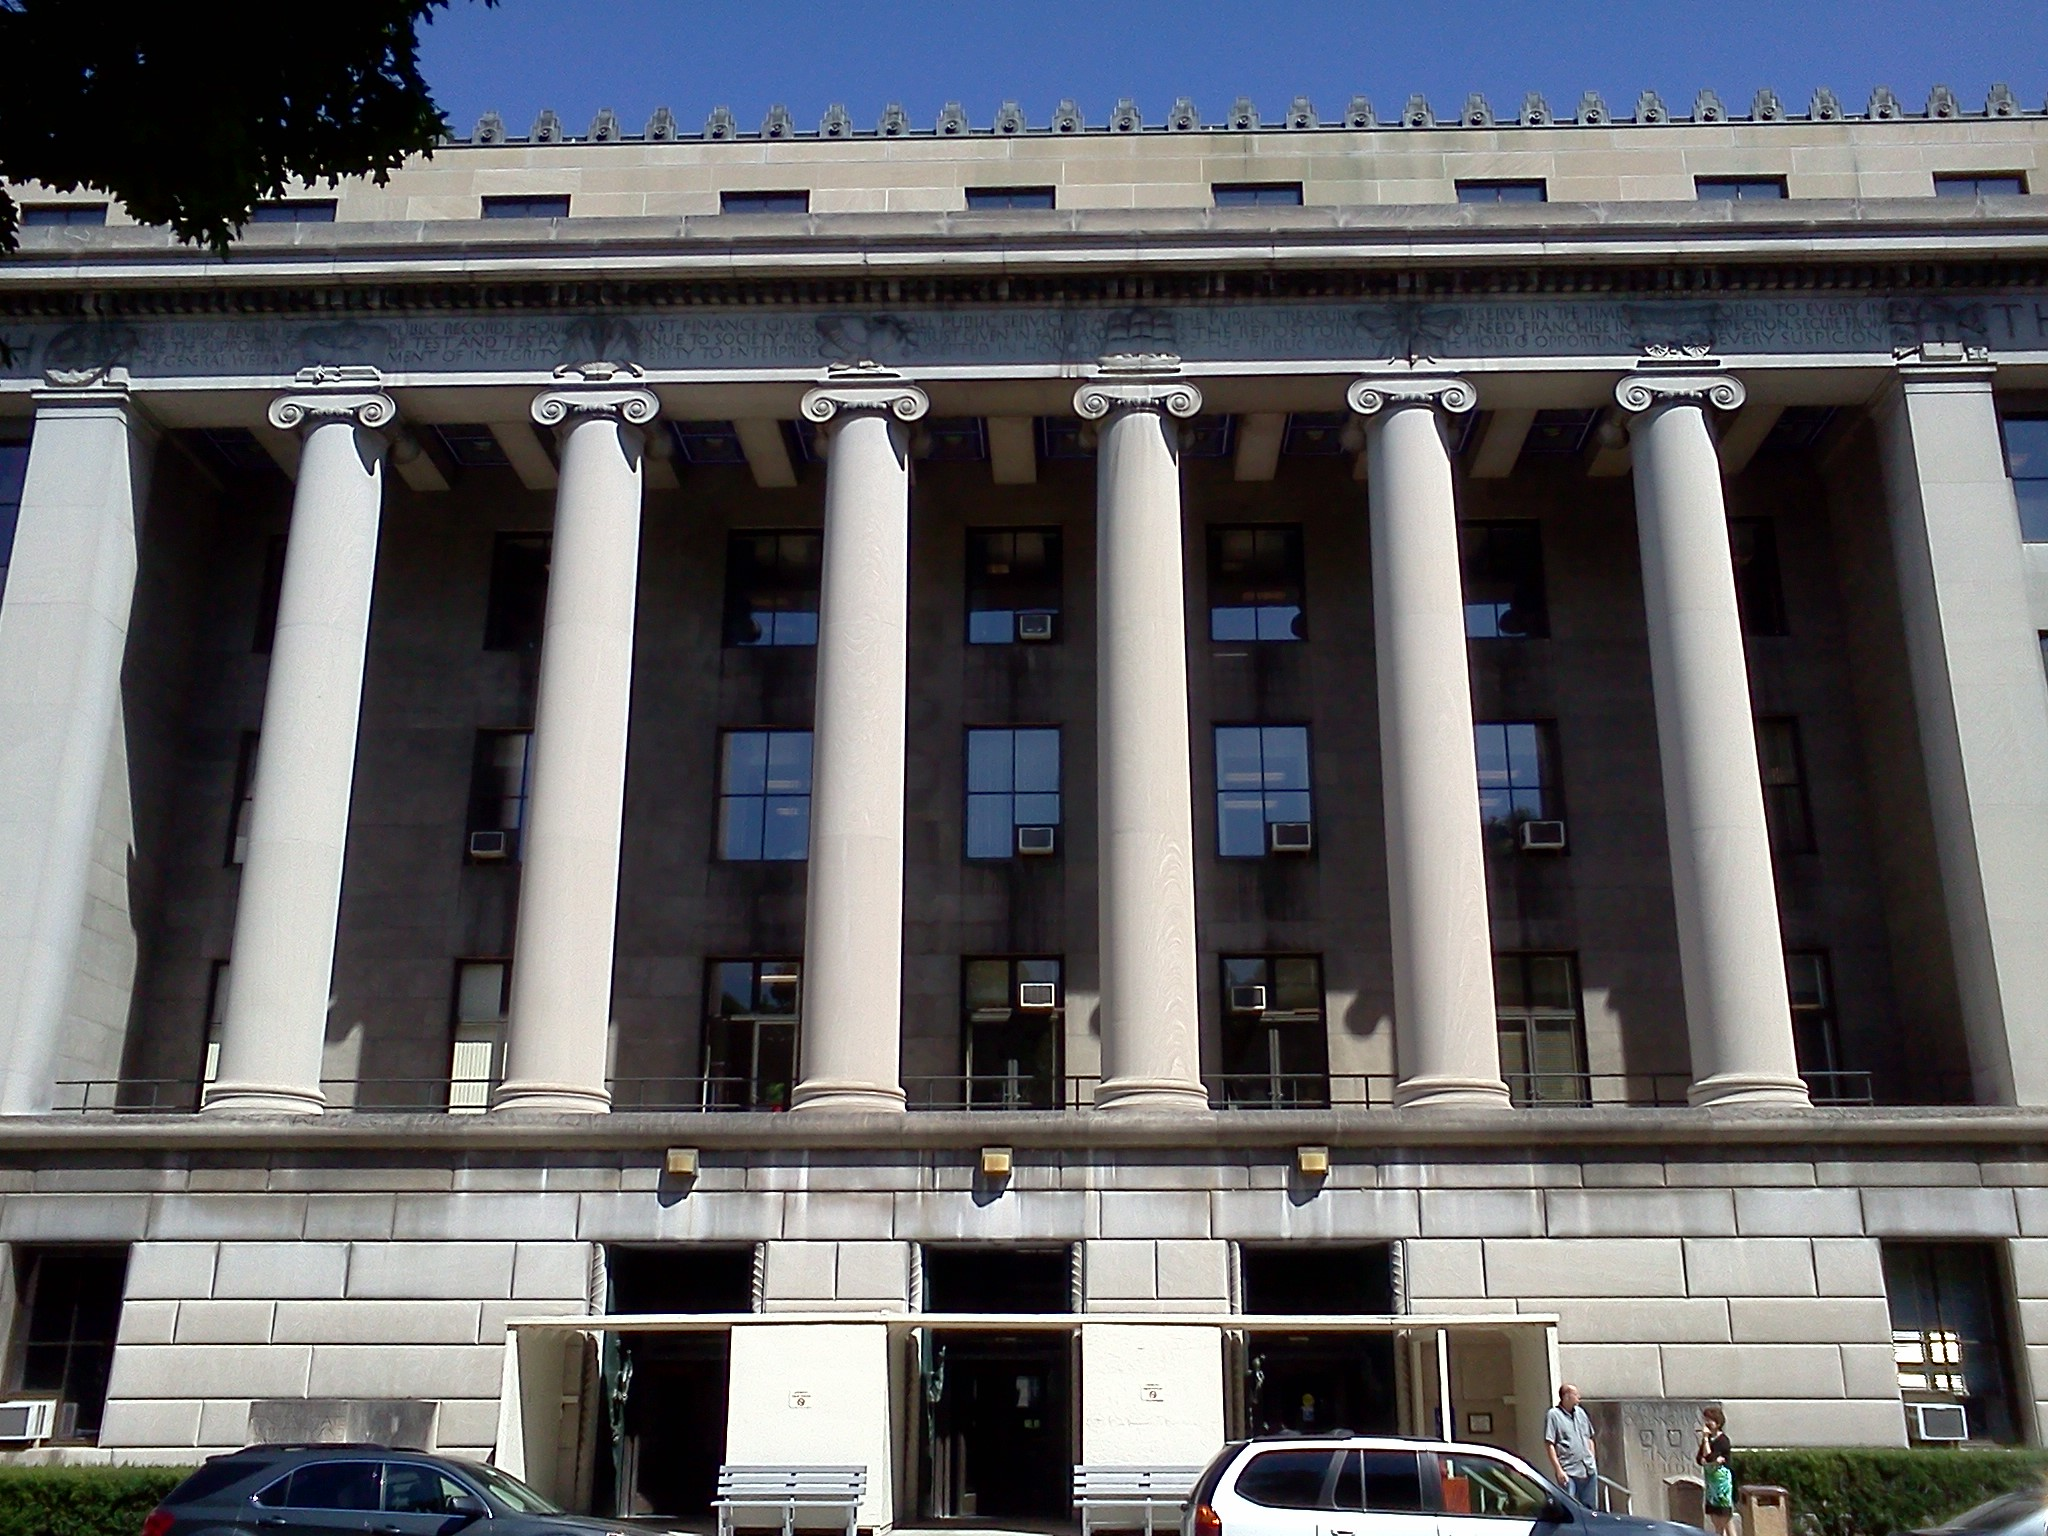 Pennsylvania Finance Building